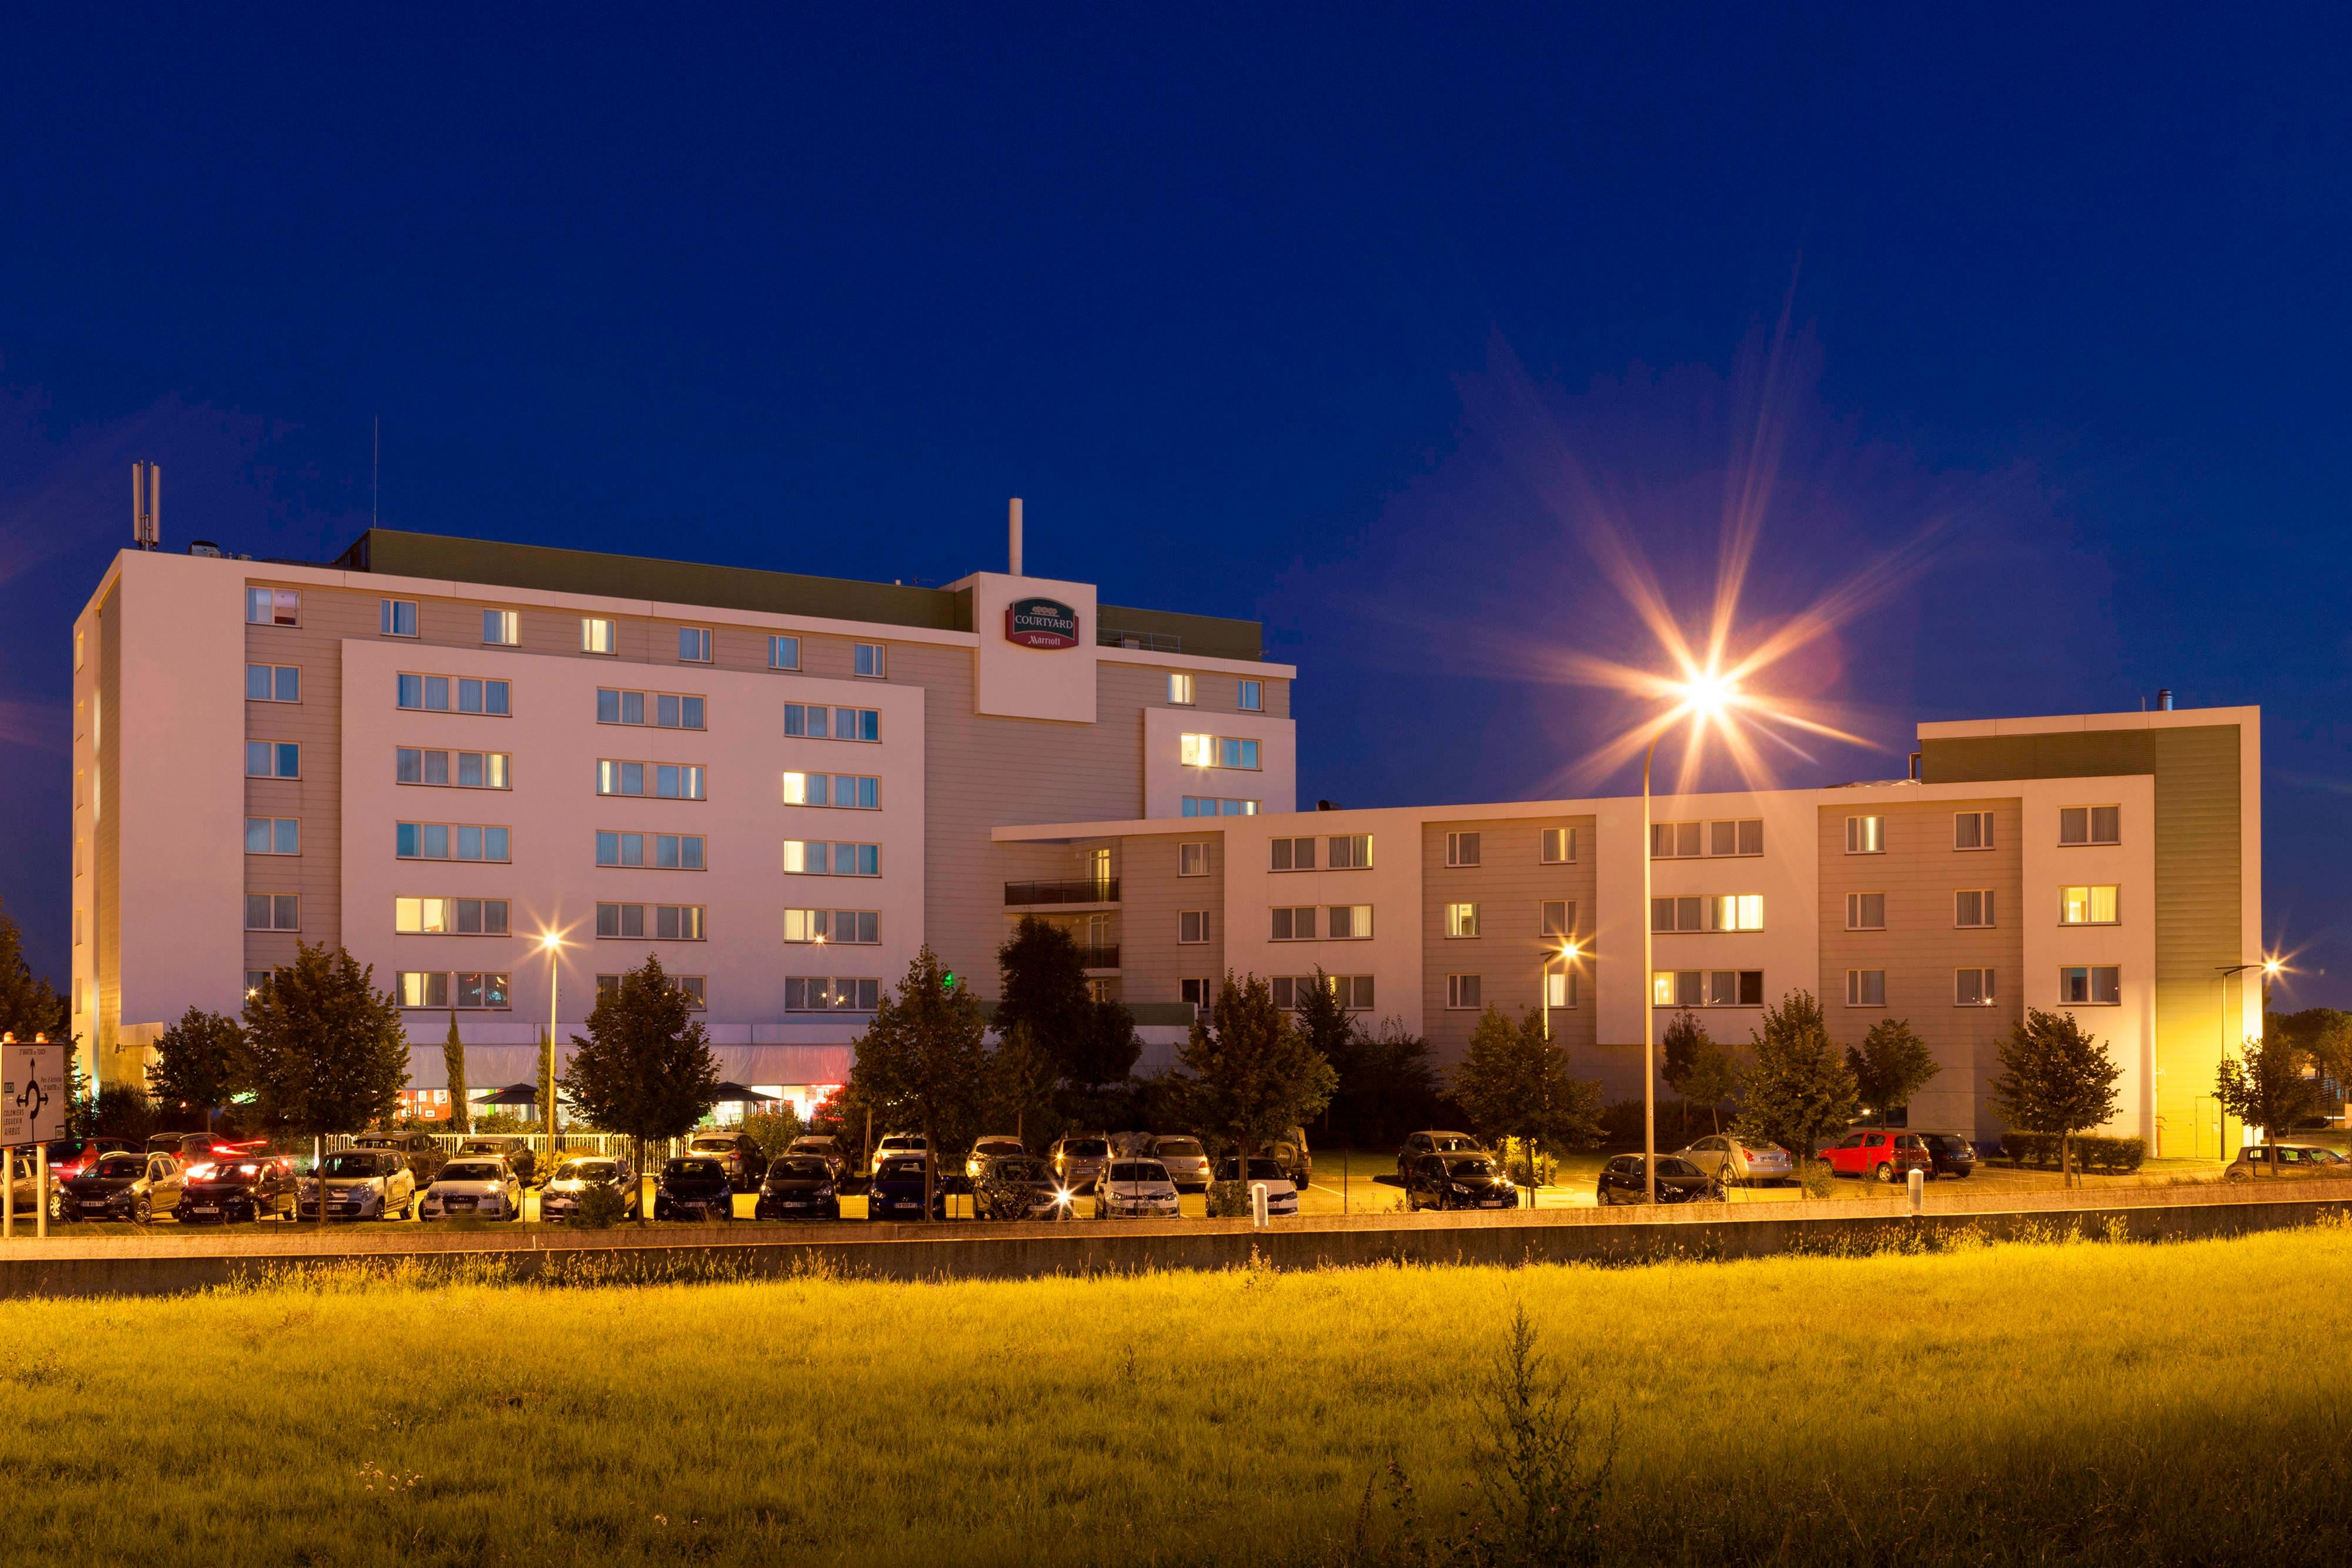 Toulouse Airport hotel exterior